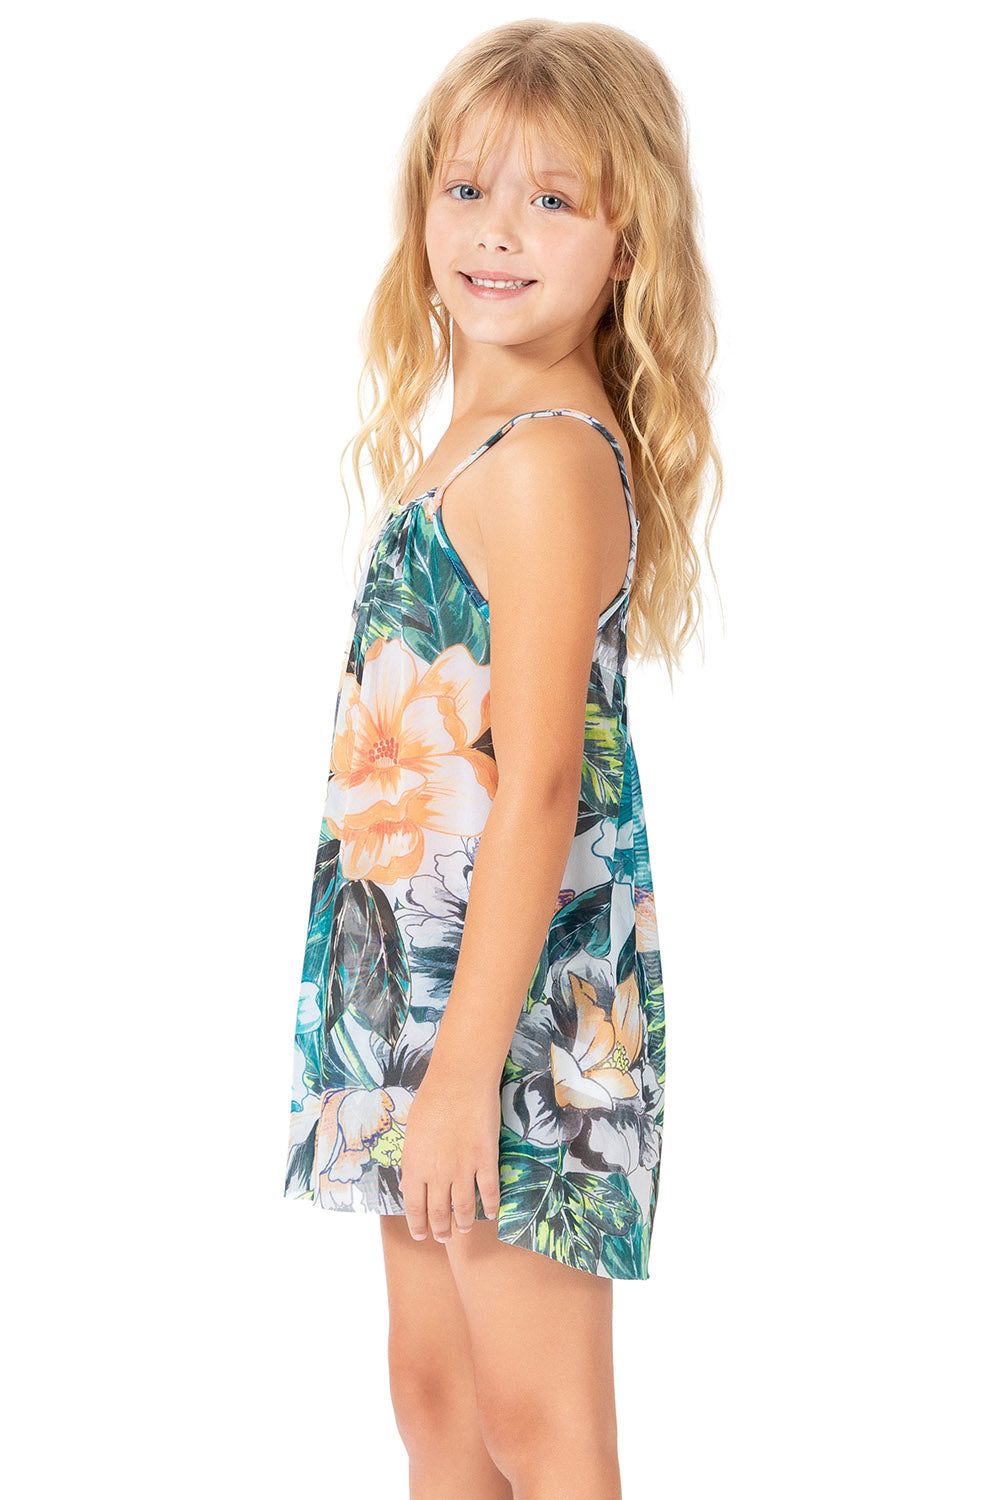 Freshness Kids Dress